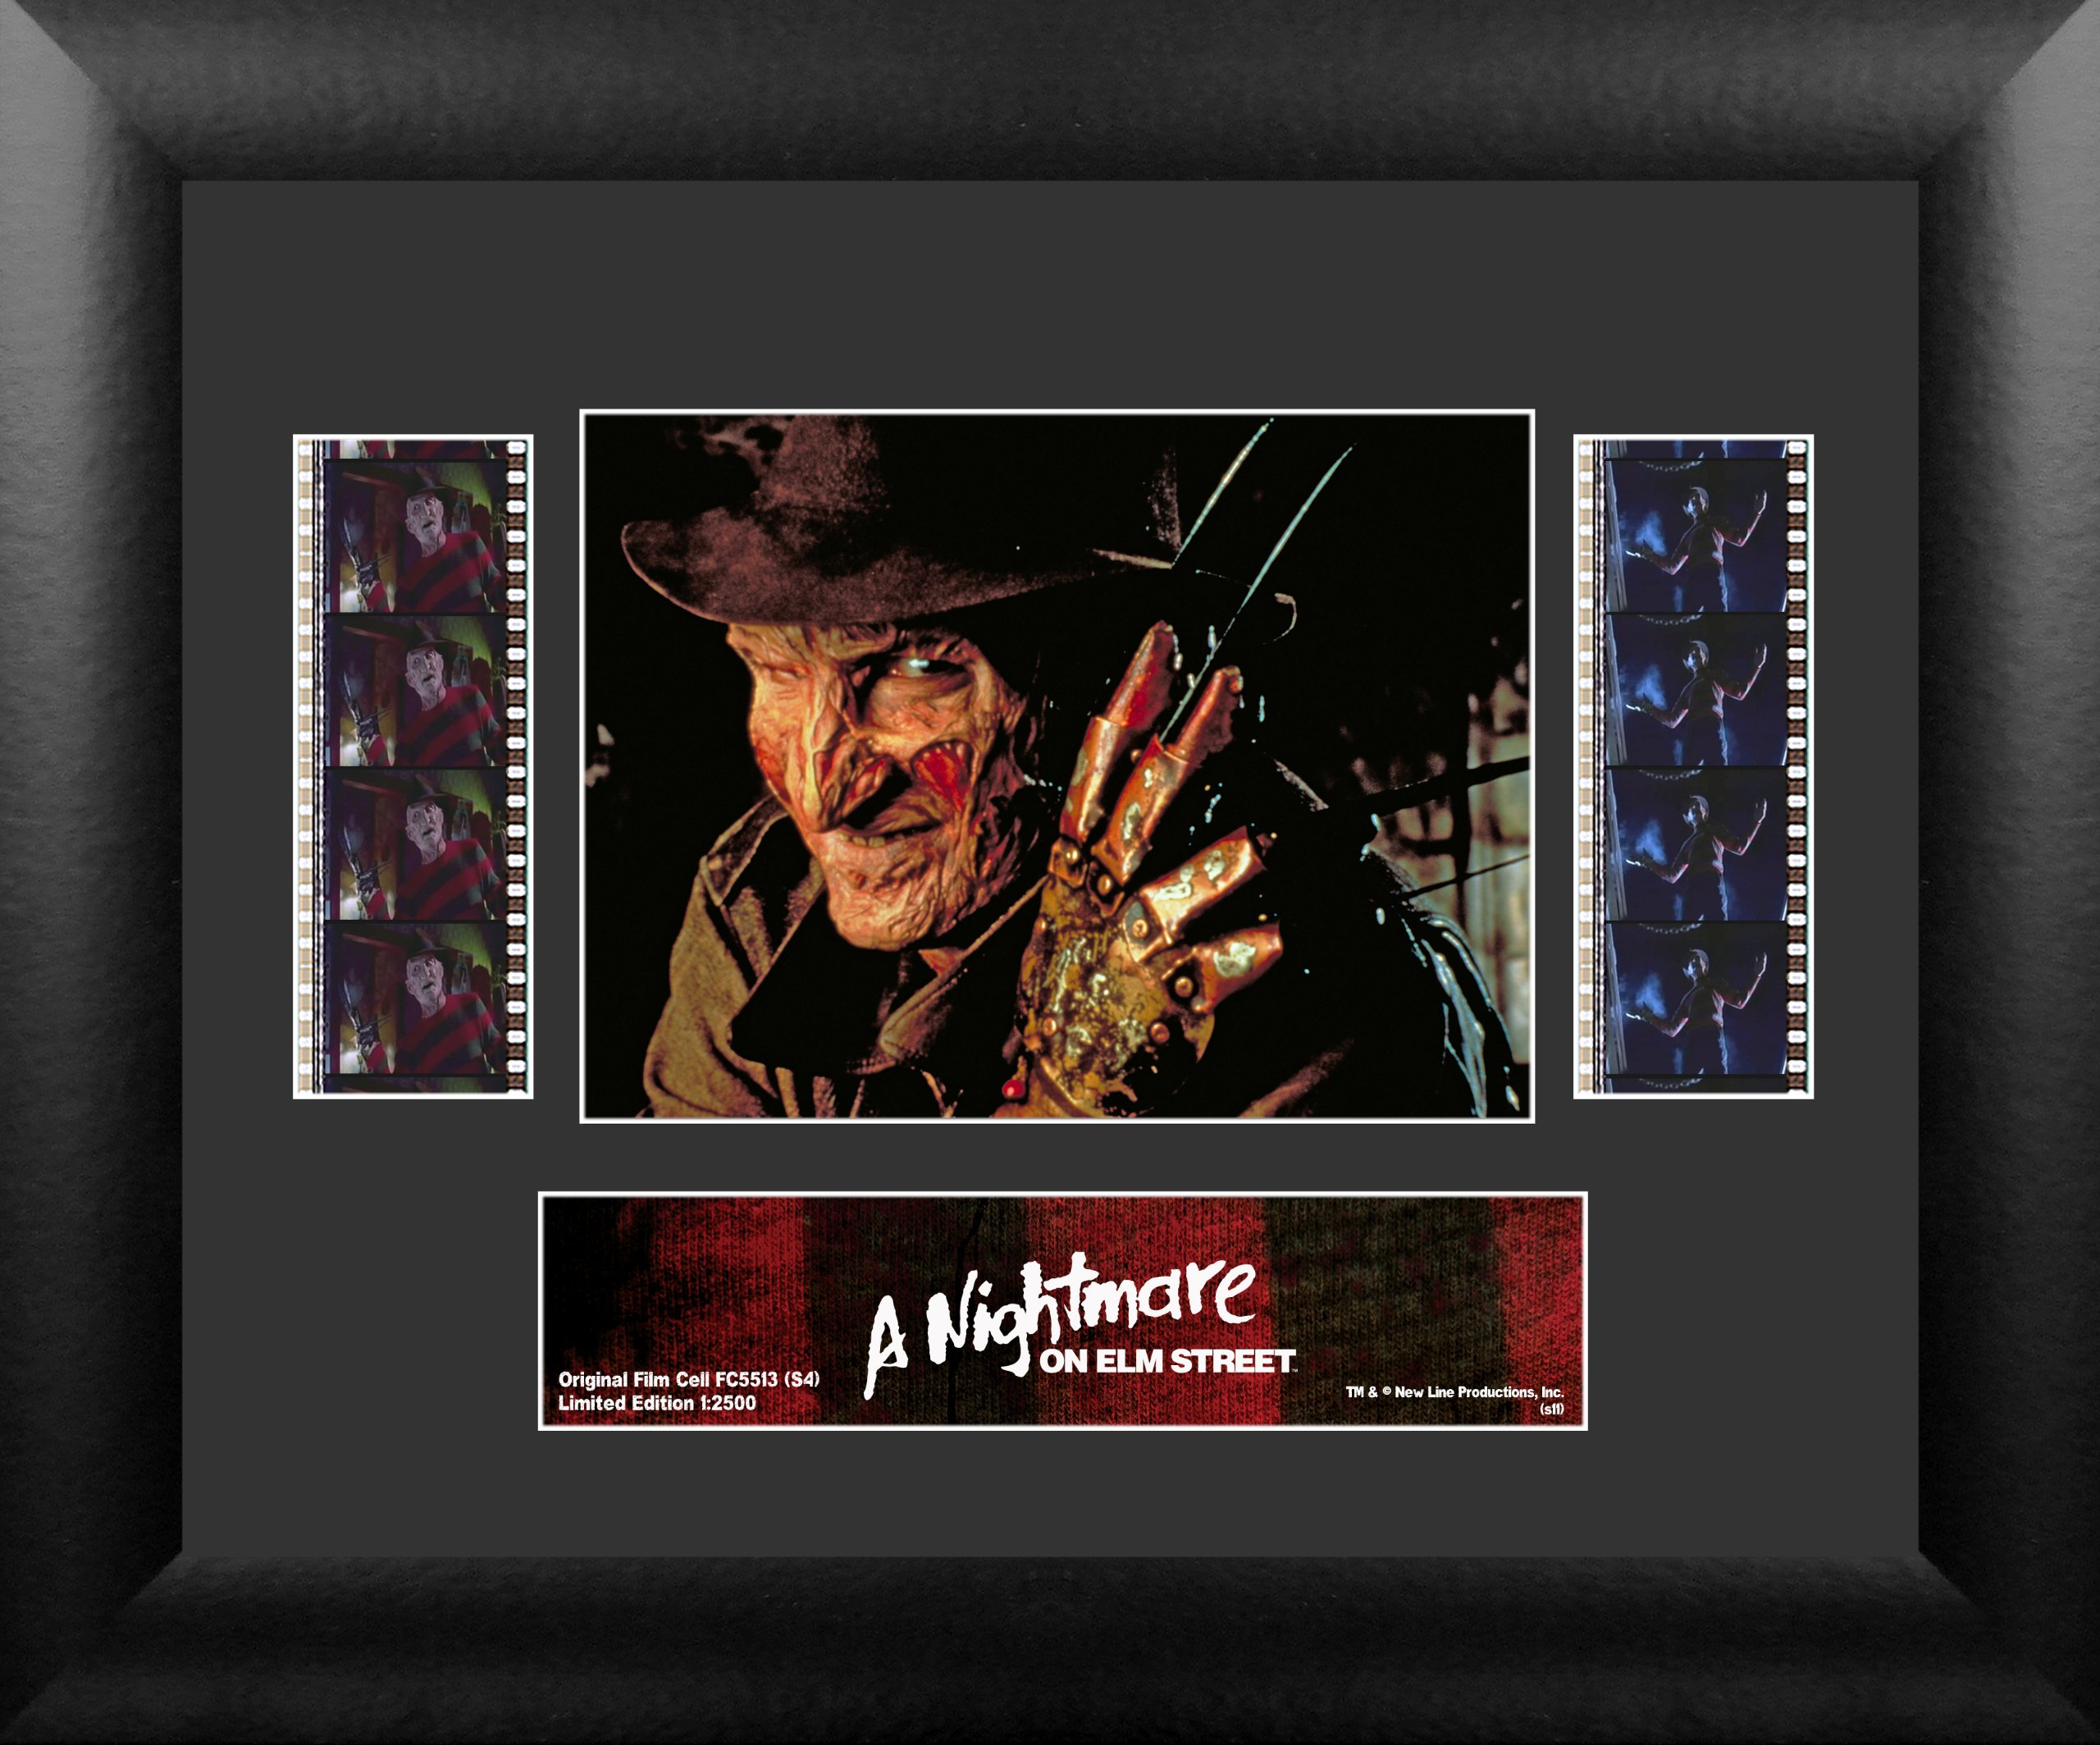 Trend Setters Ltd Nightmare On Elm Street S4 Double Film Cell by Trend Setters Ltd